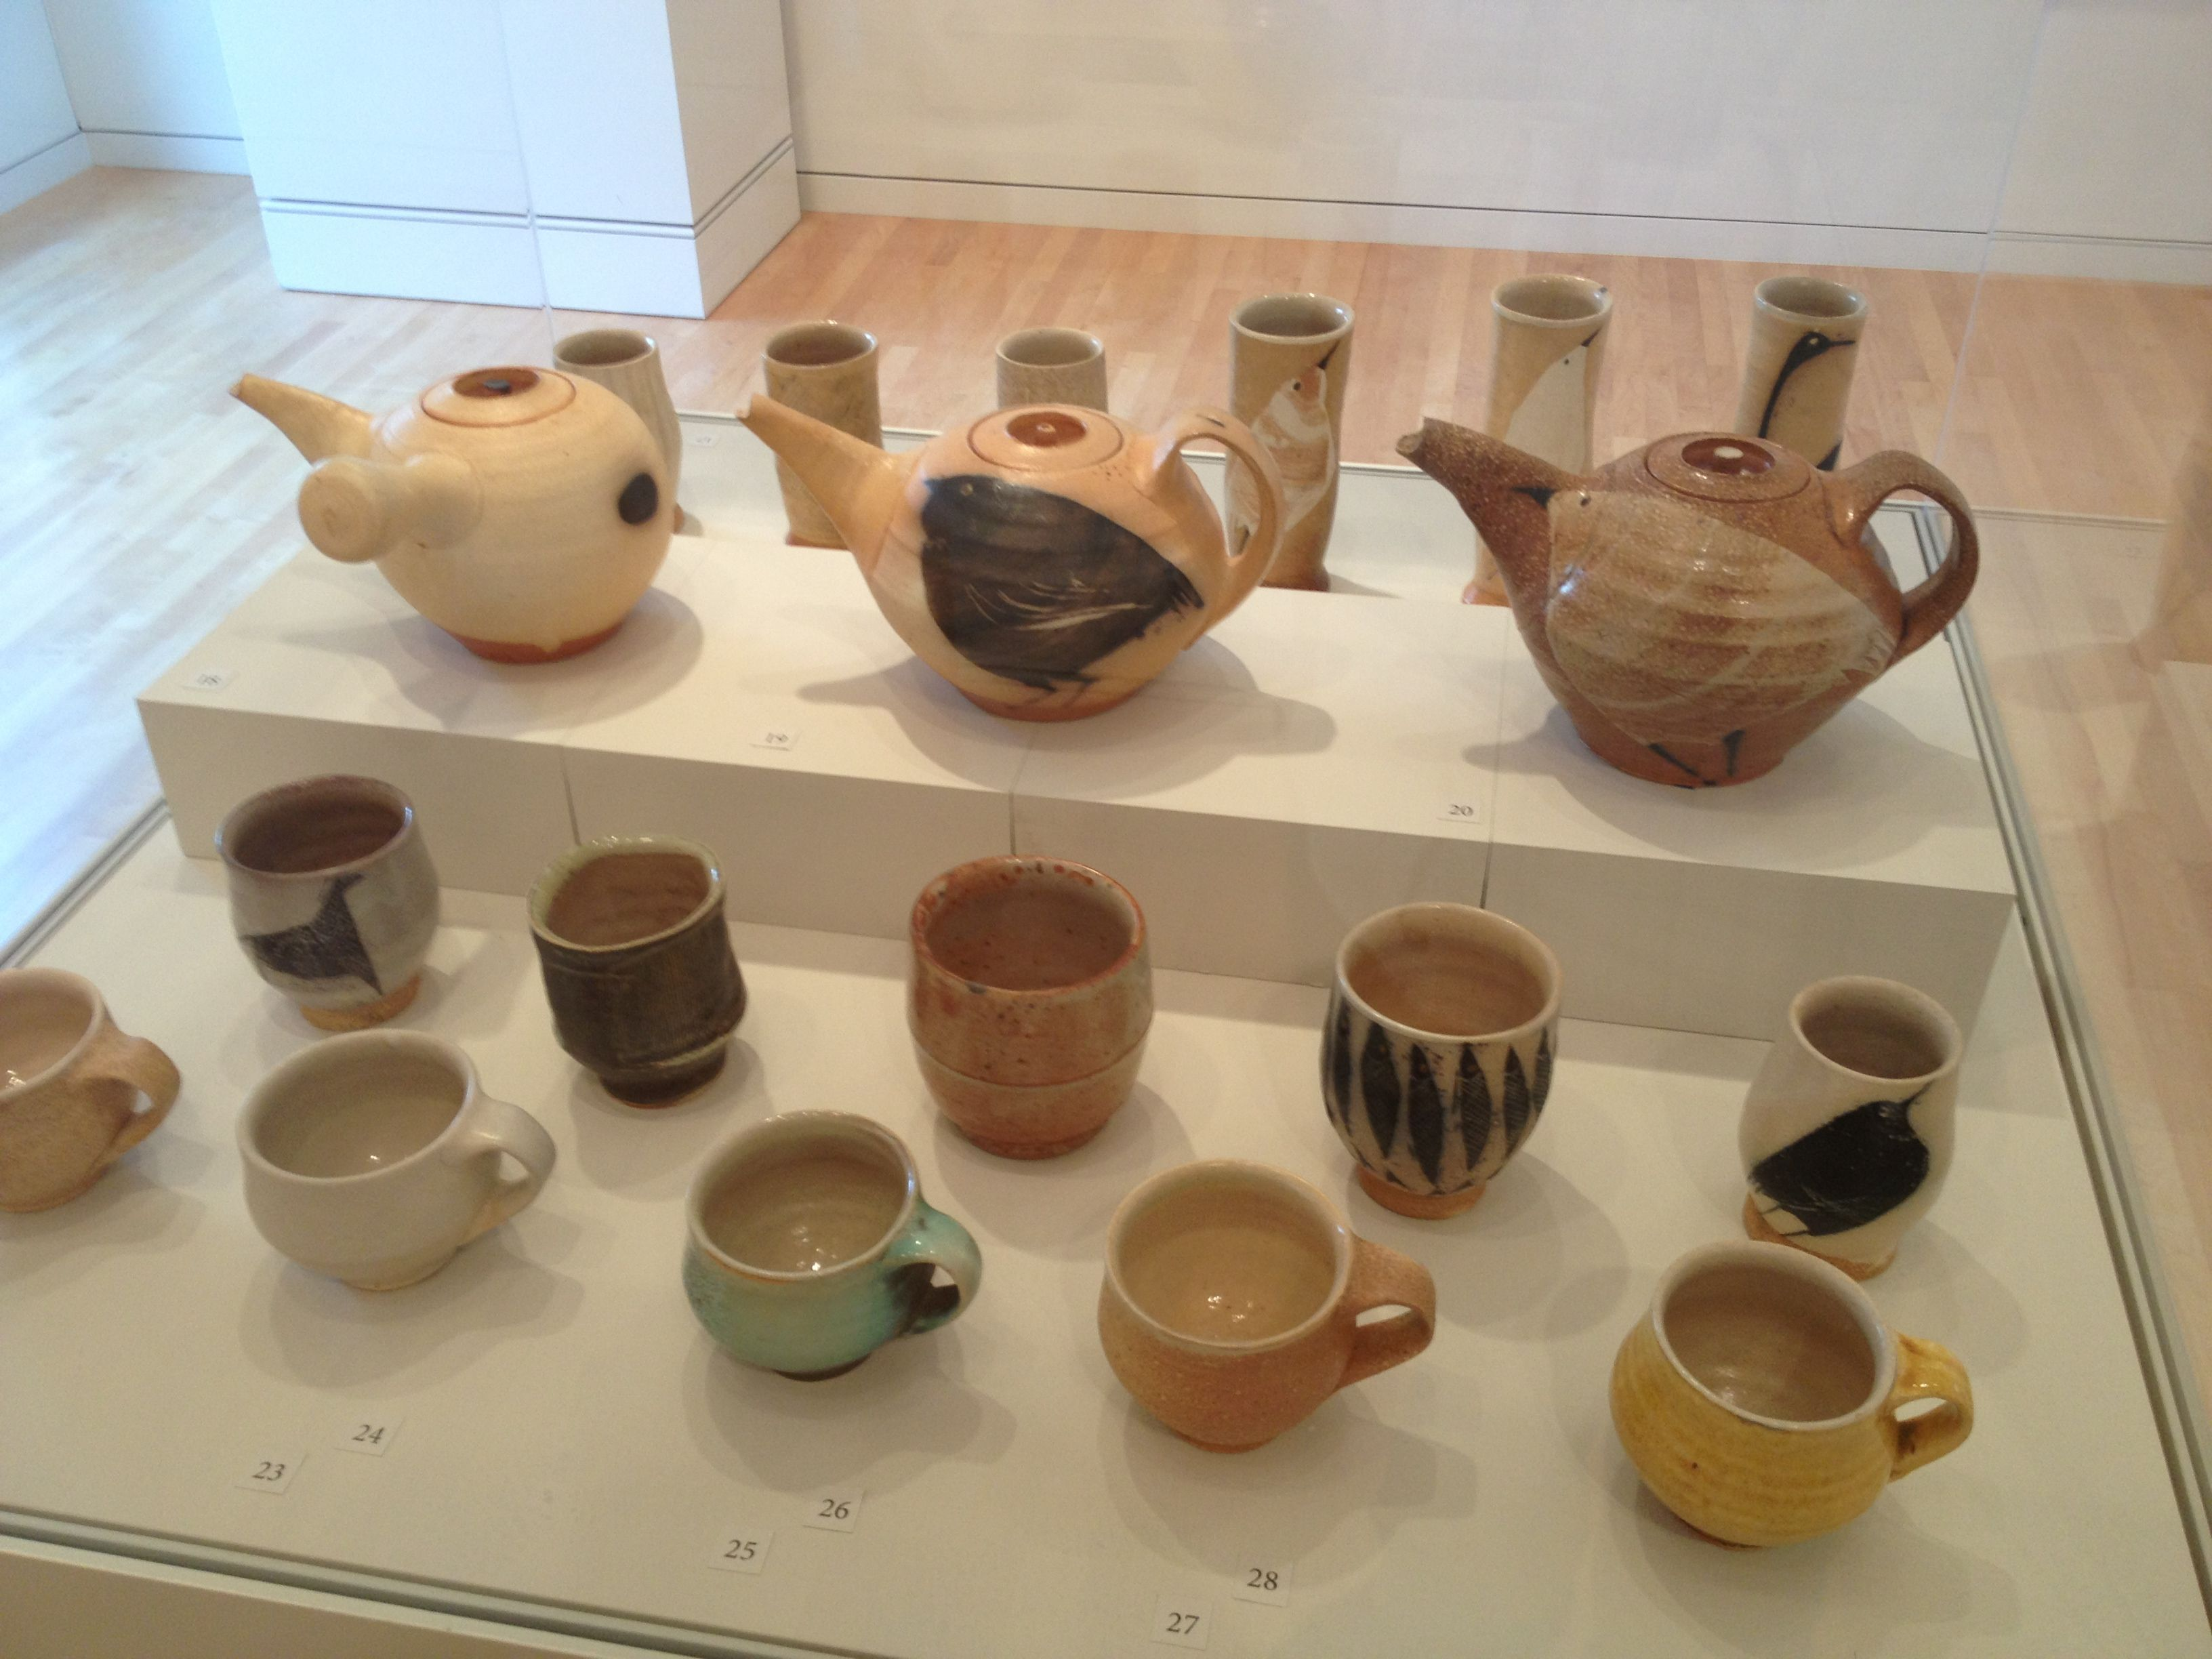 Pots From Pick Of The Kiln Exhibition At The Georgia Museum Of Art Athens Ga 2013 Michael Simon Art Museum Exhibition